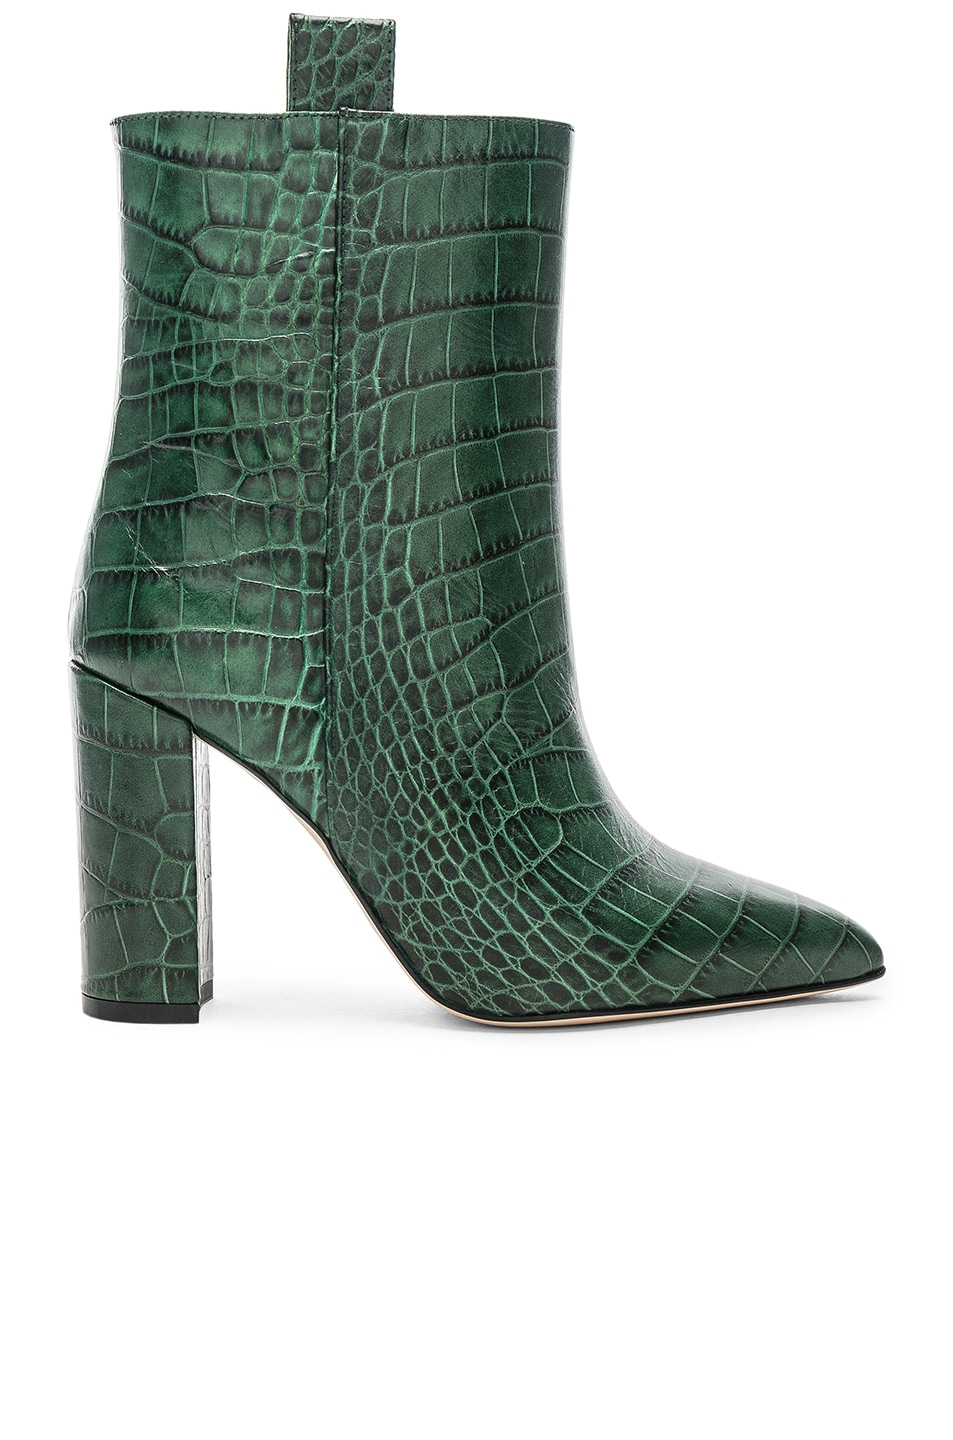 Image 1 of Paris Texas Ankle Boot in Green Croc